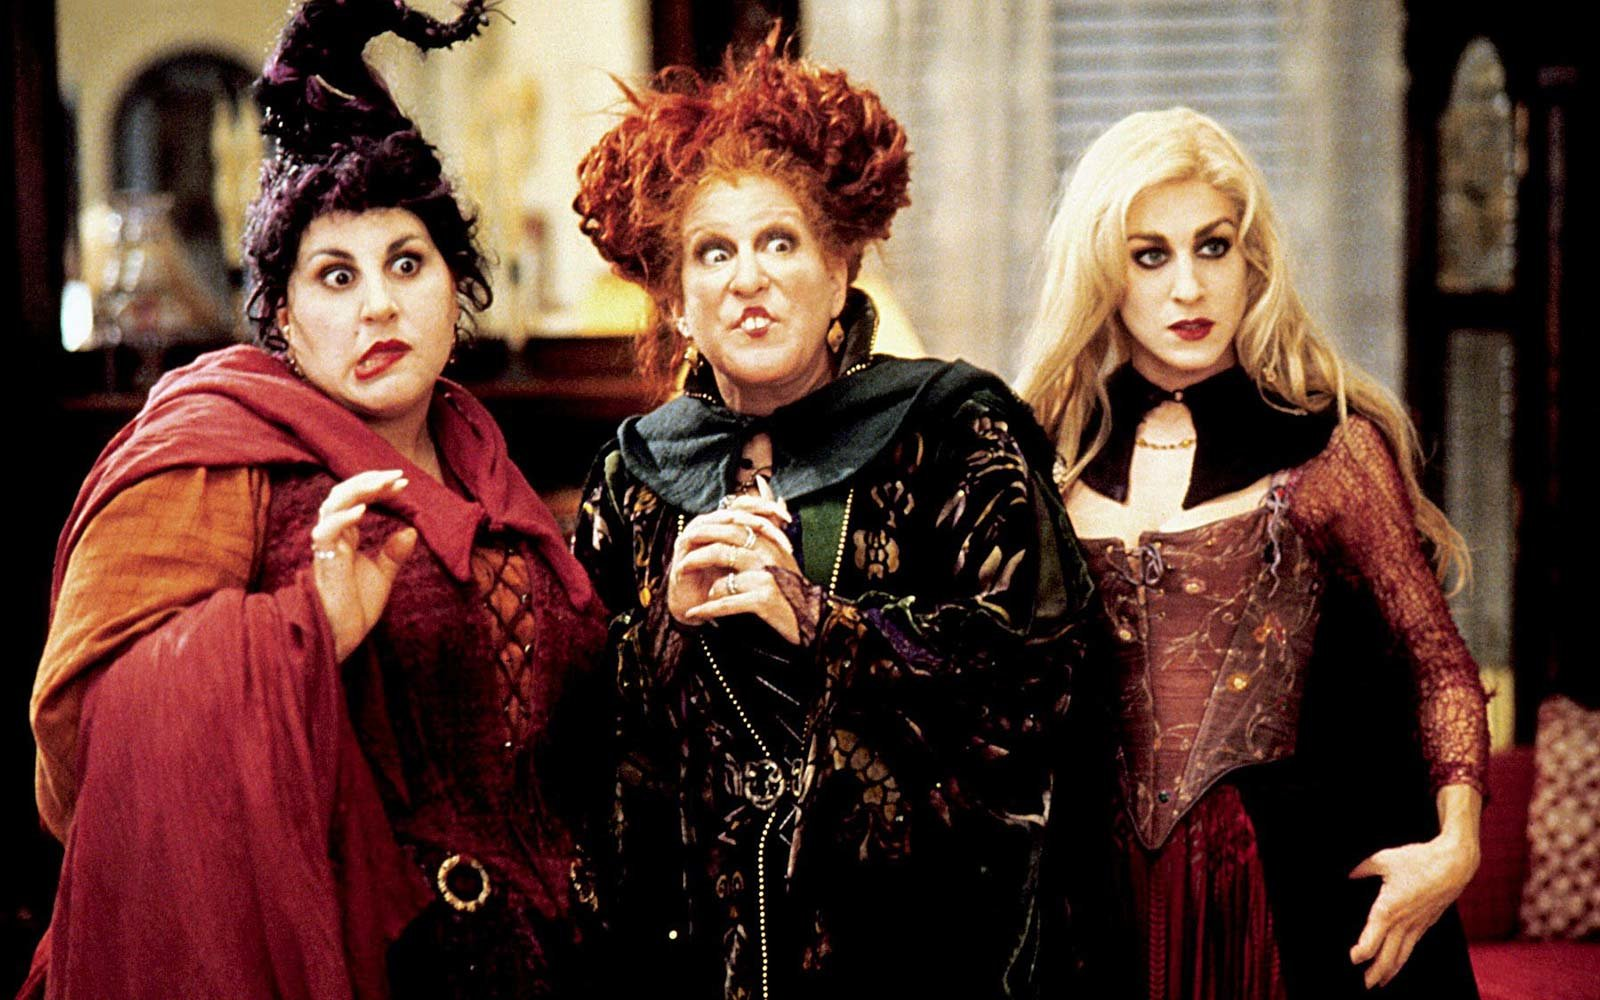 hocus pocus halloween film movie bette Midler sarah jessica parker kathy najimy